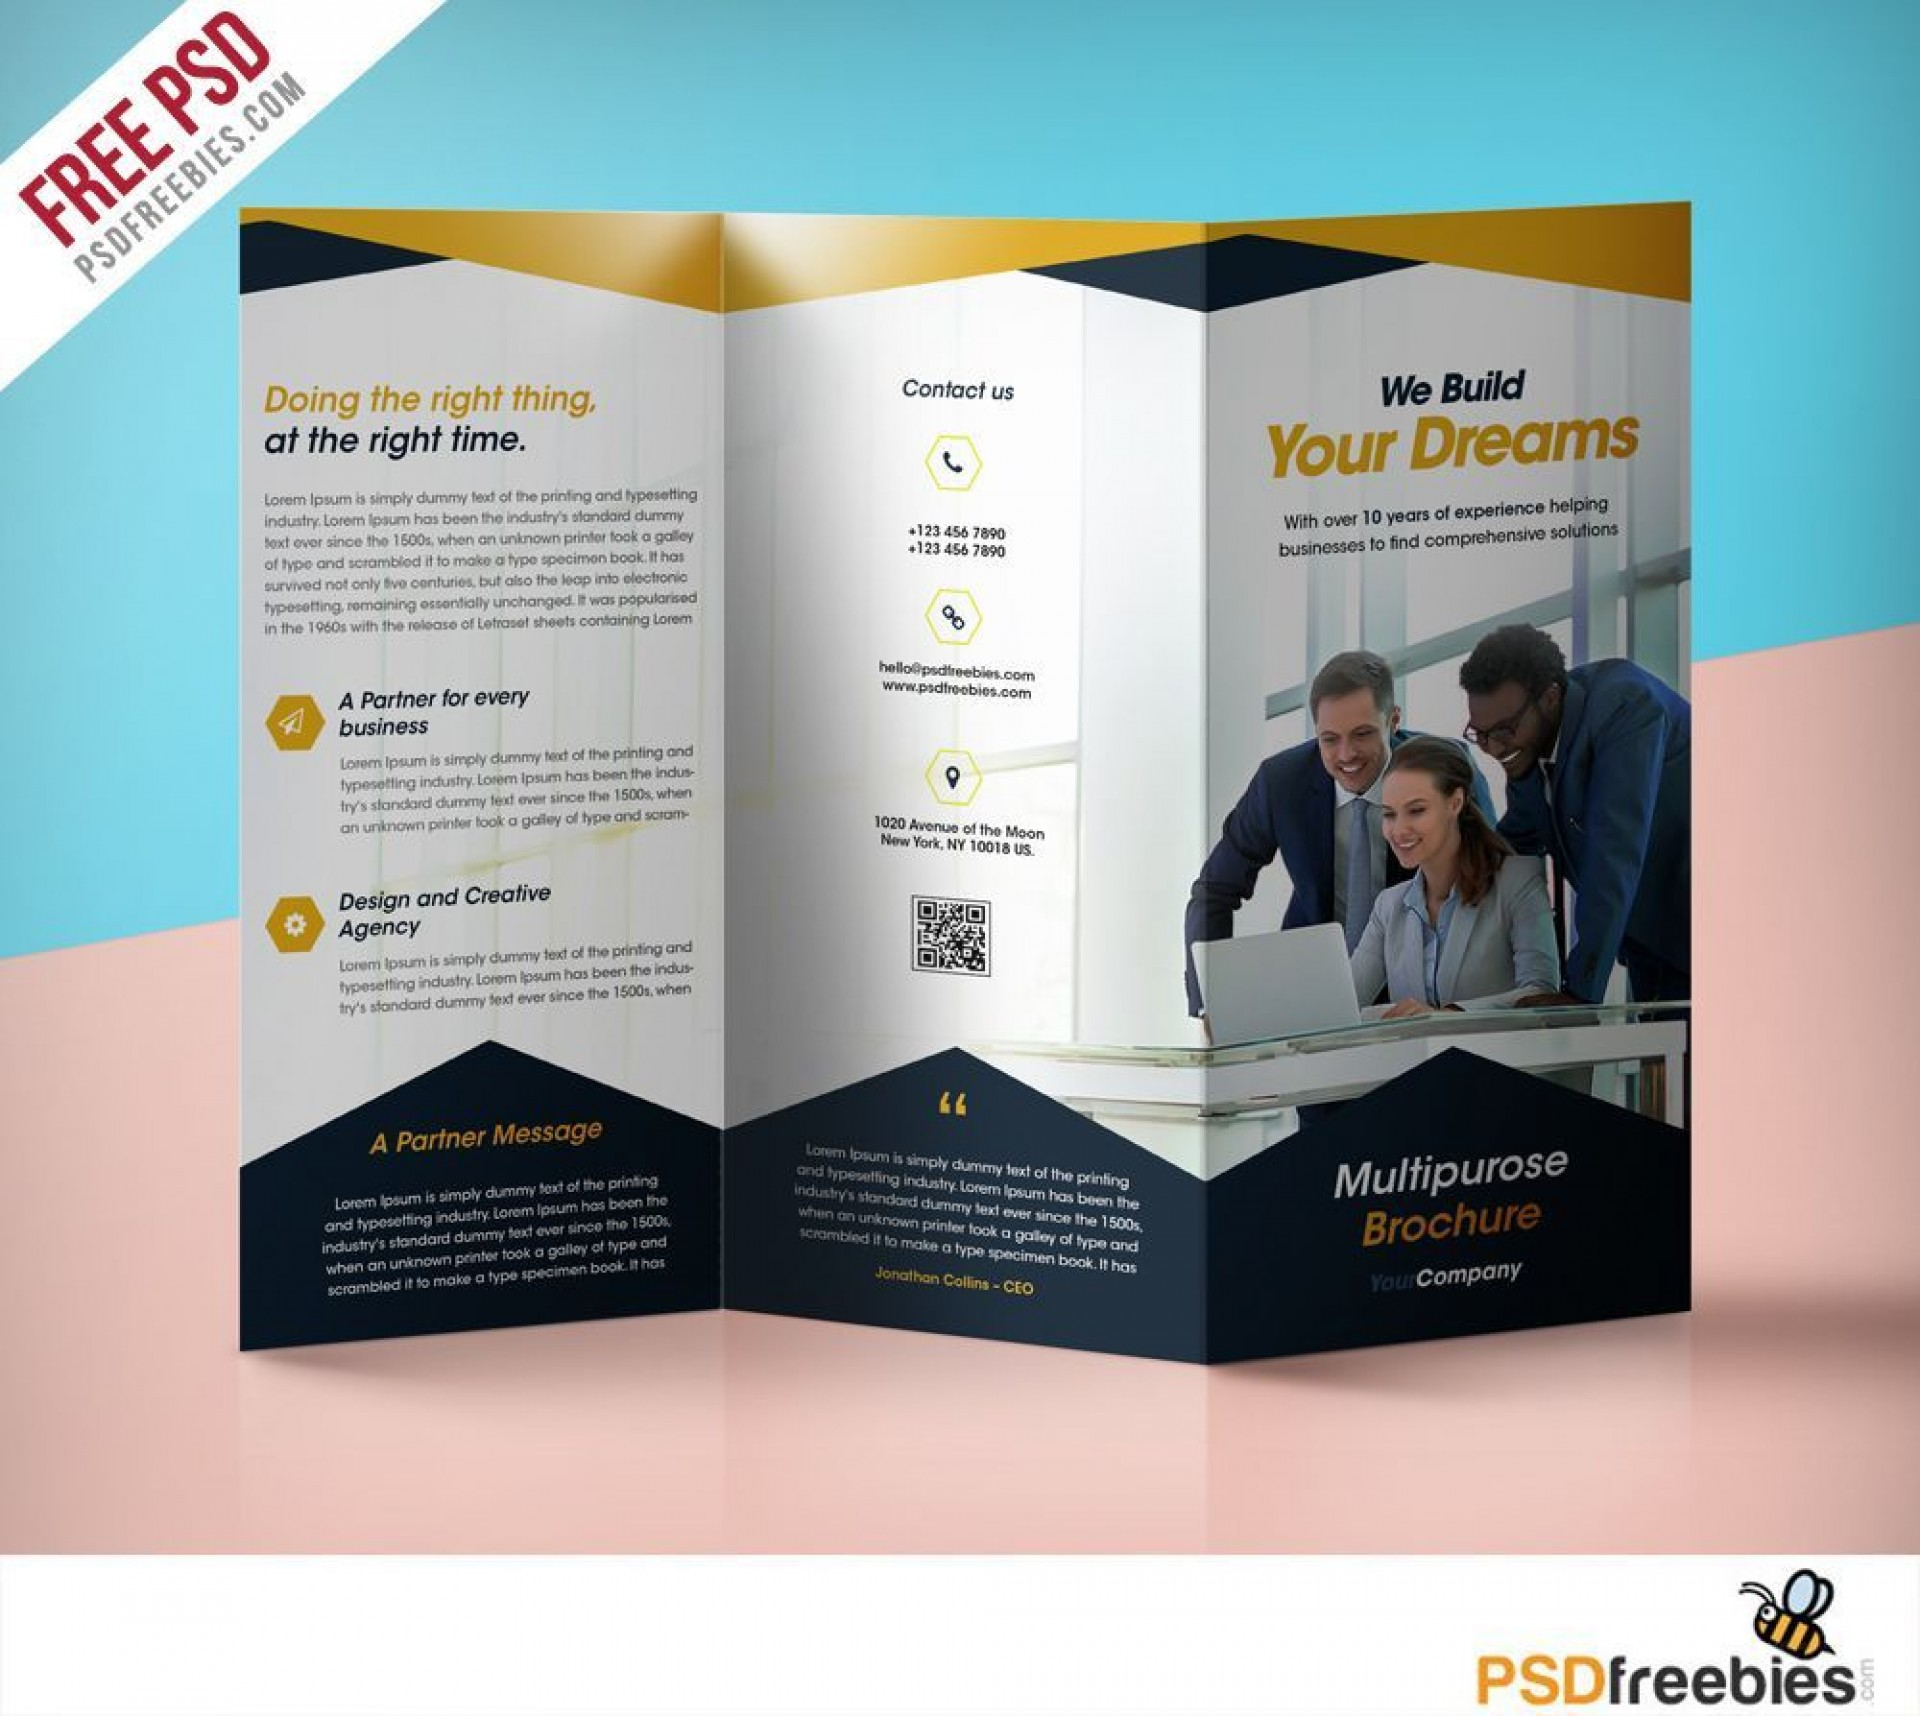 001 Staggering Adobe Photoshop Brochure Template Free Download Idea 1920